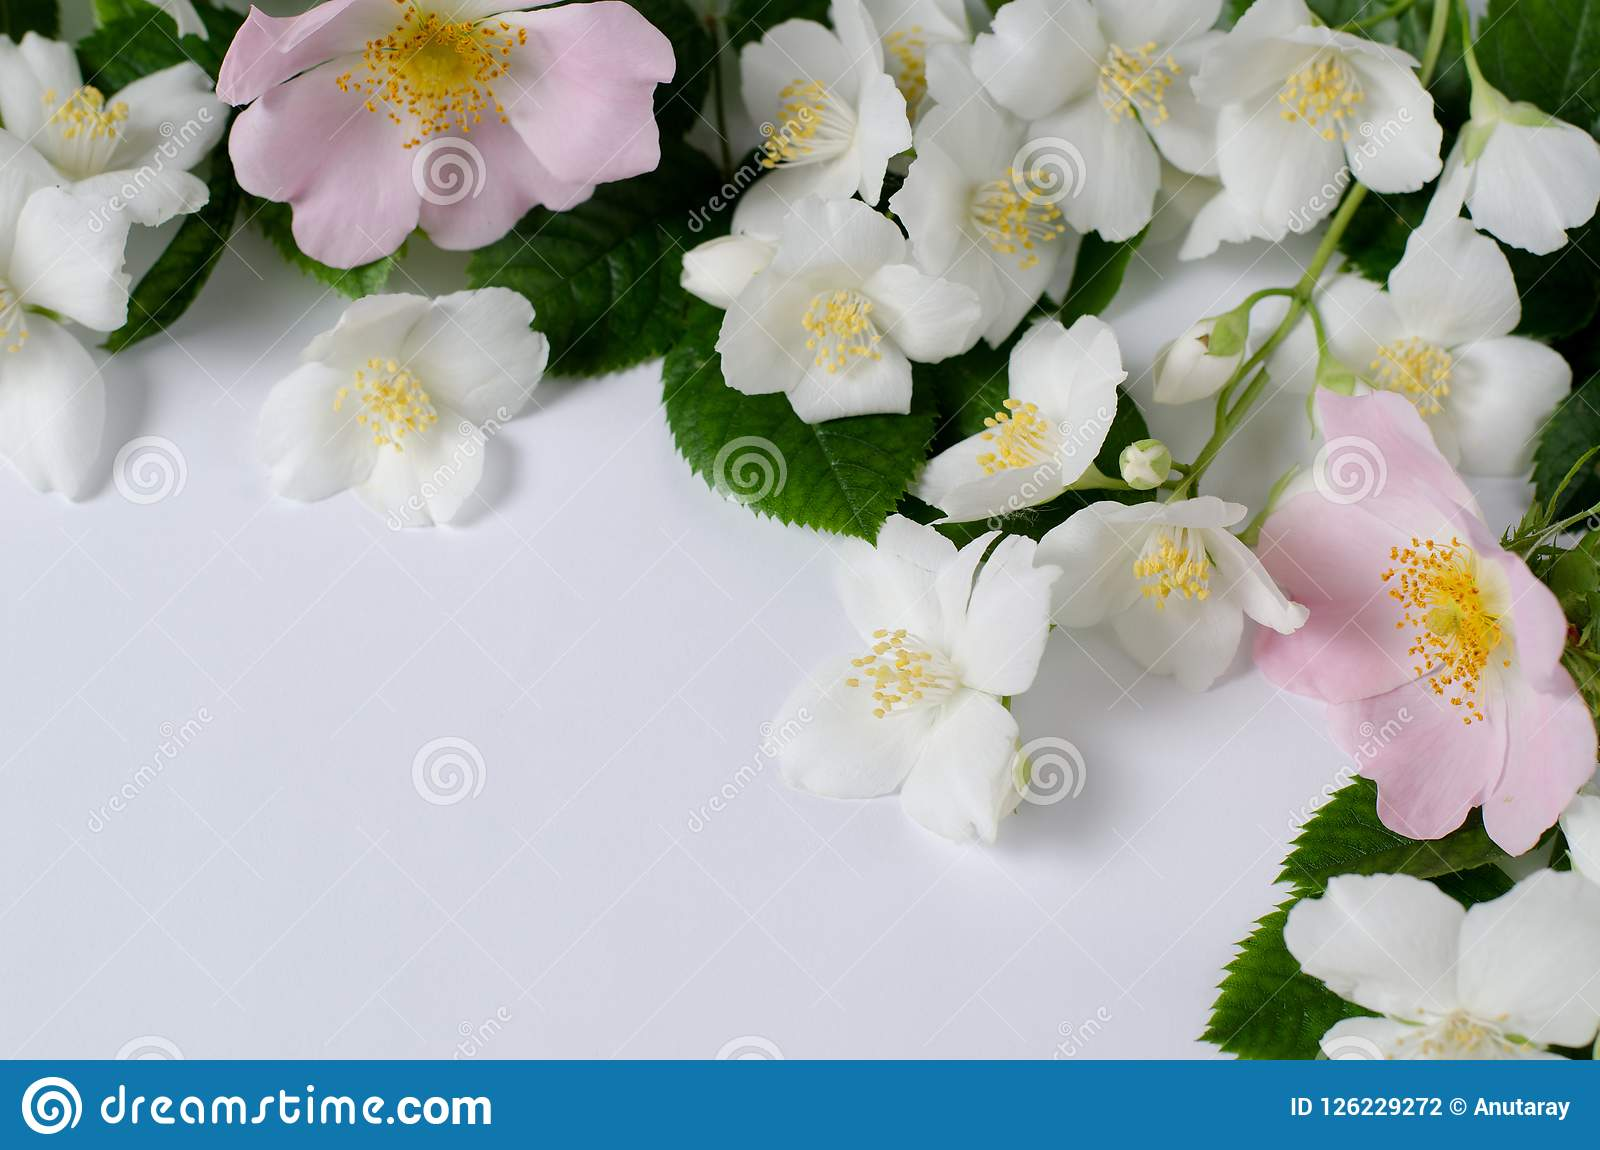 Background Of Tea Roses And Jasmine Flowers Romantic Spring